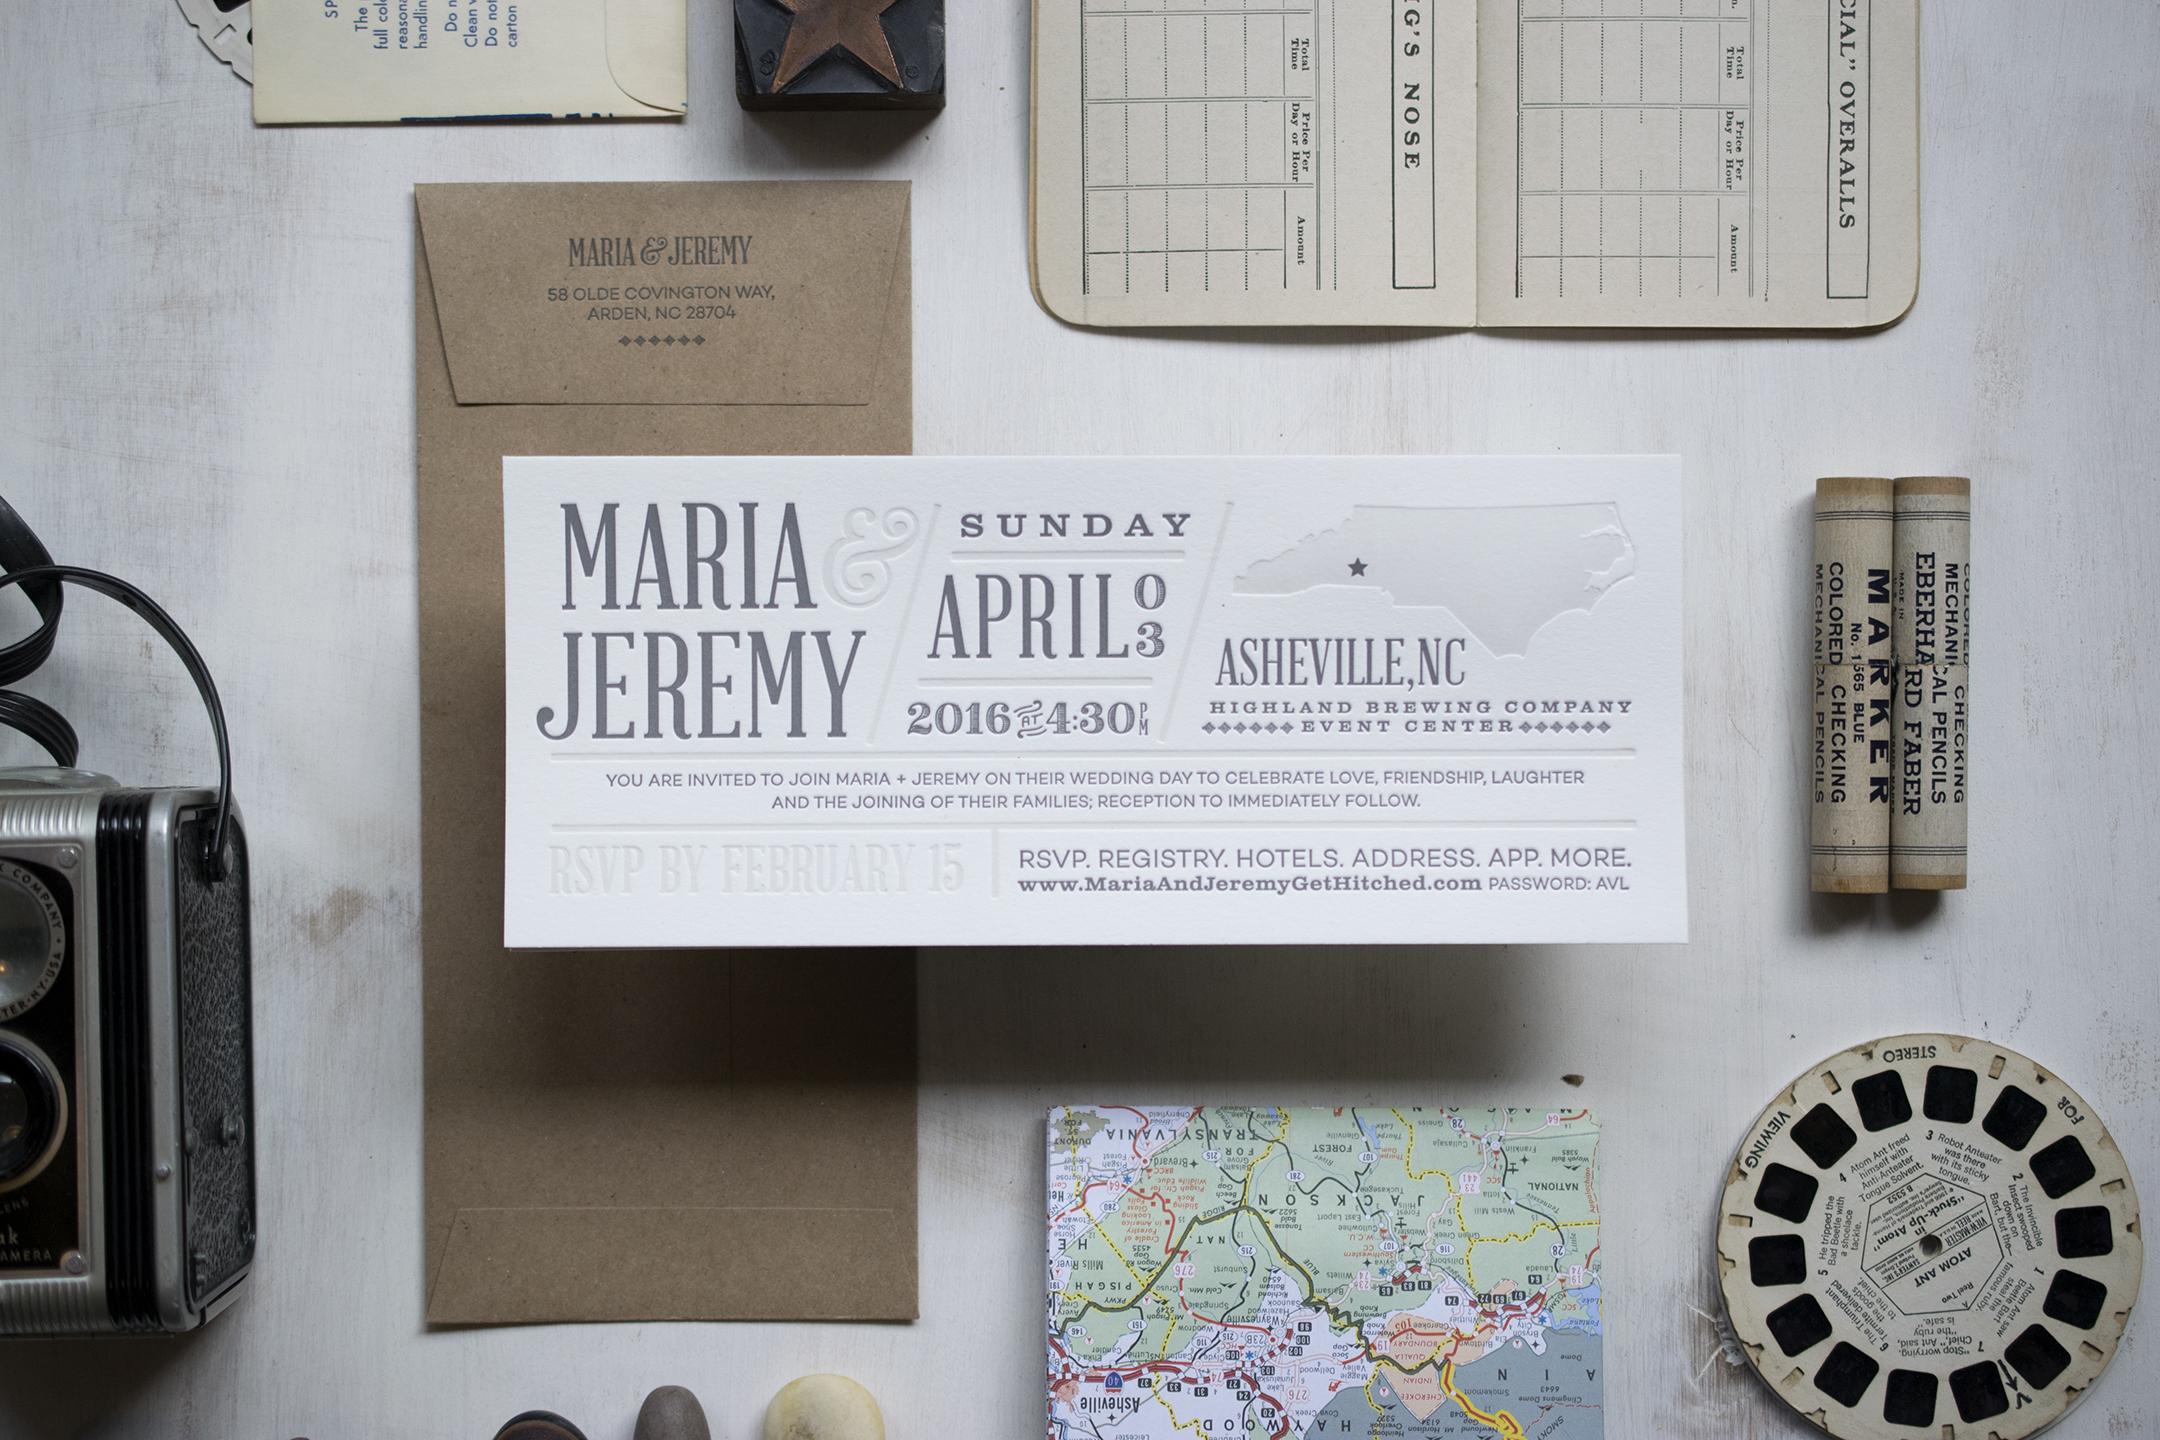 Maria & Jeremy: Letterpress printed wedding invitation. Designed at 7 Ton Co.